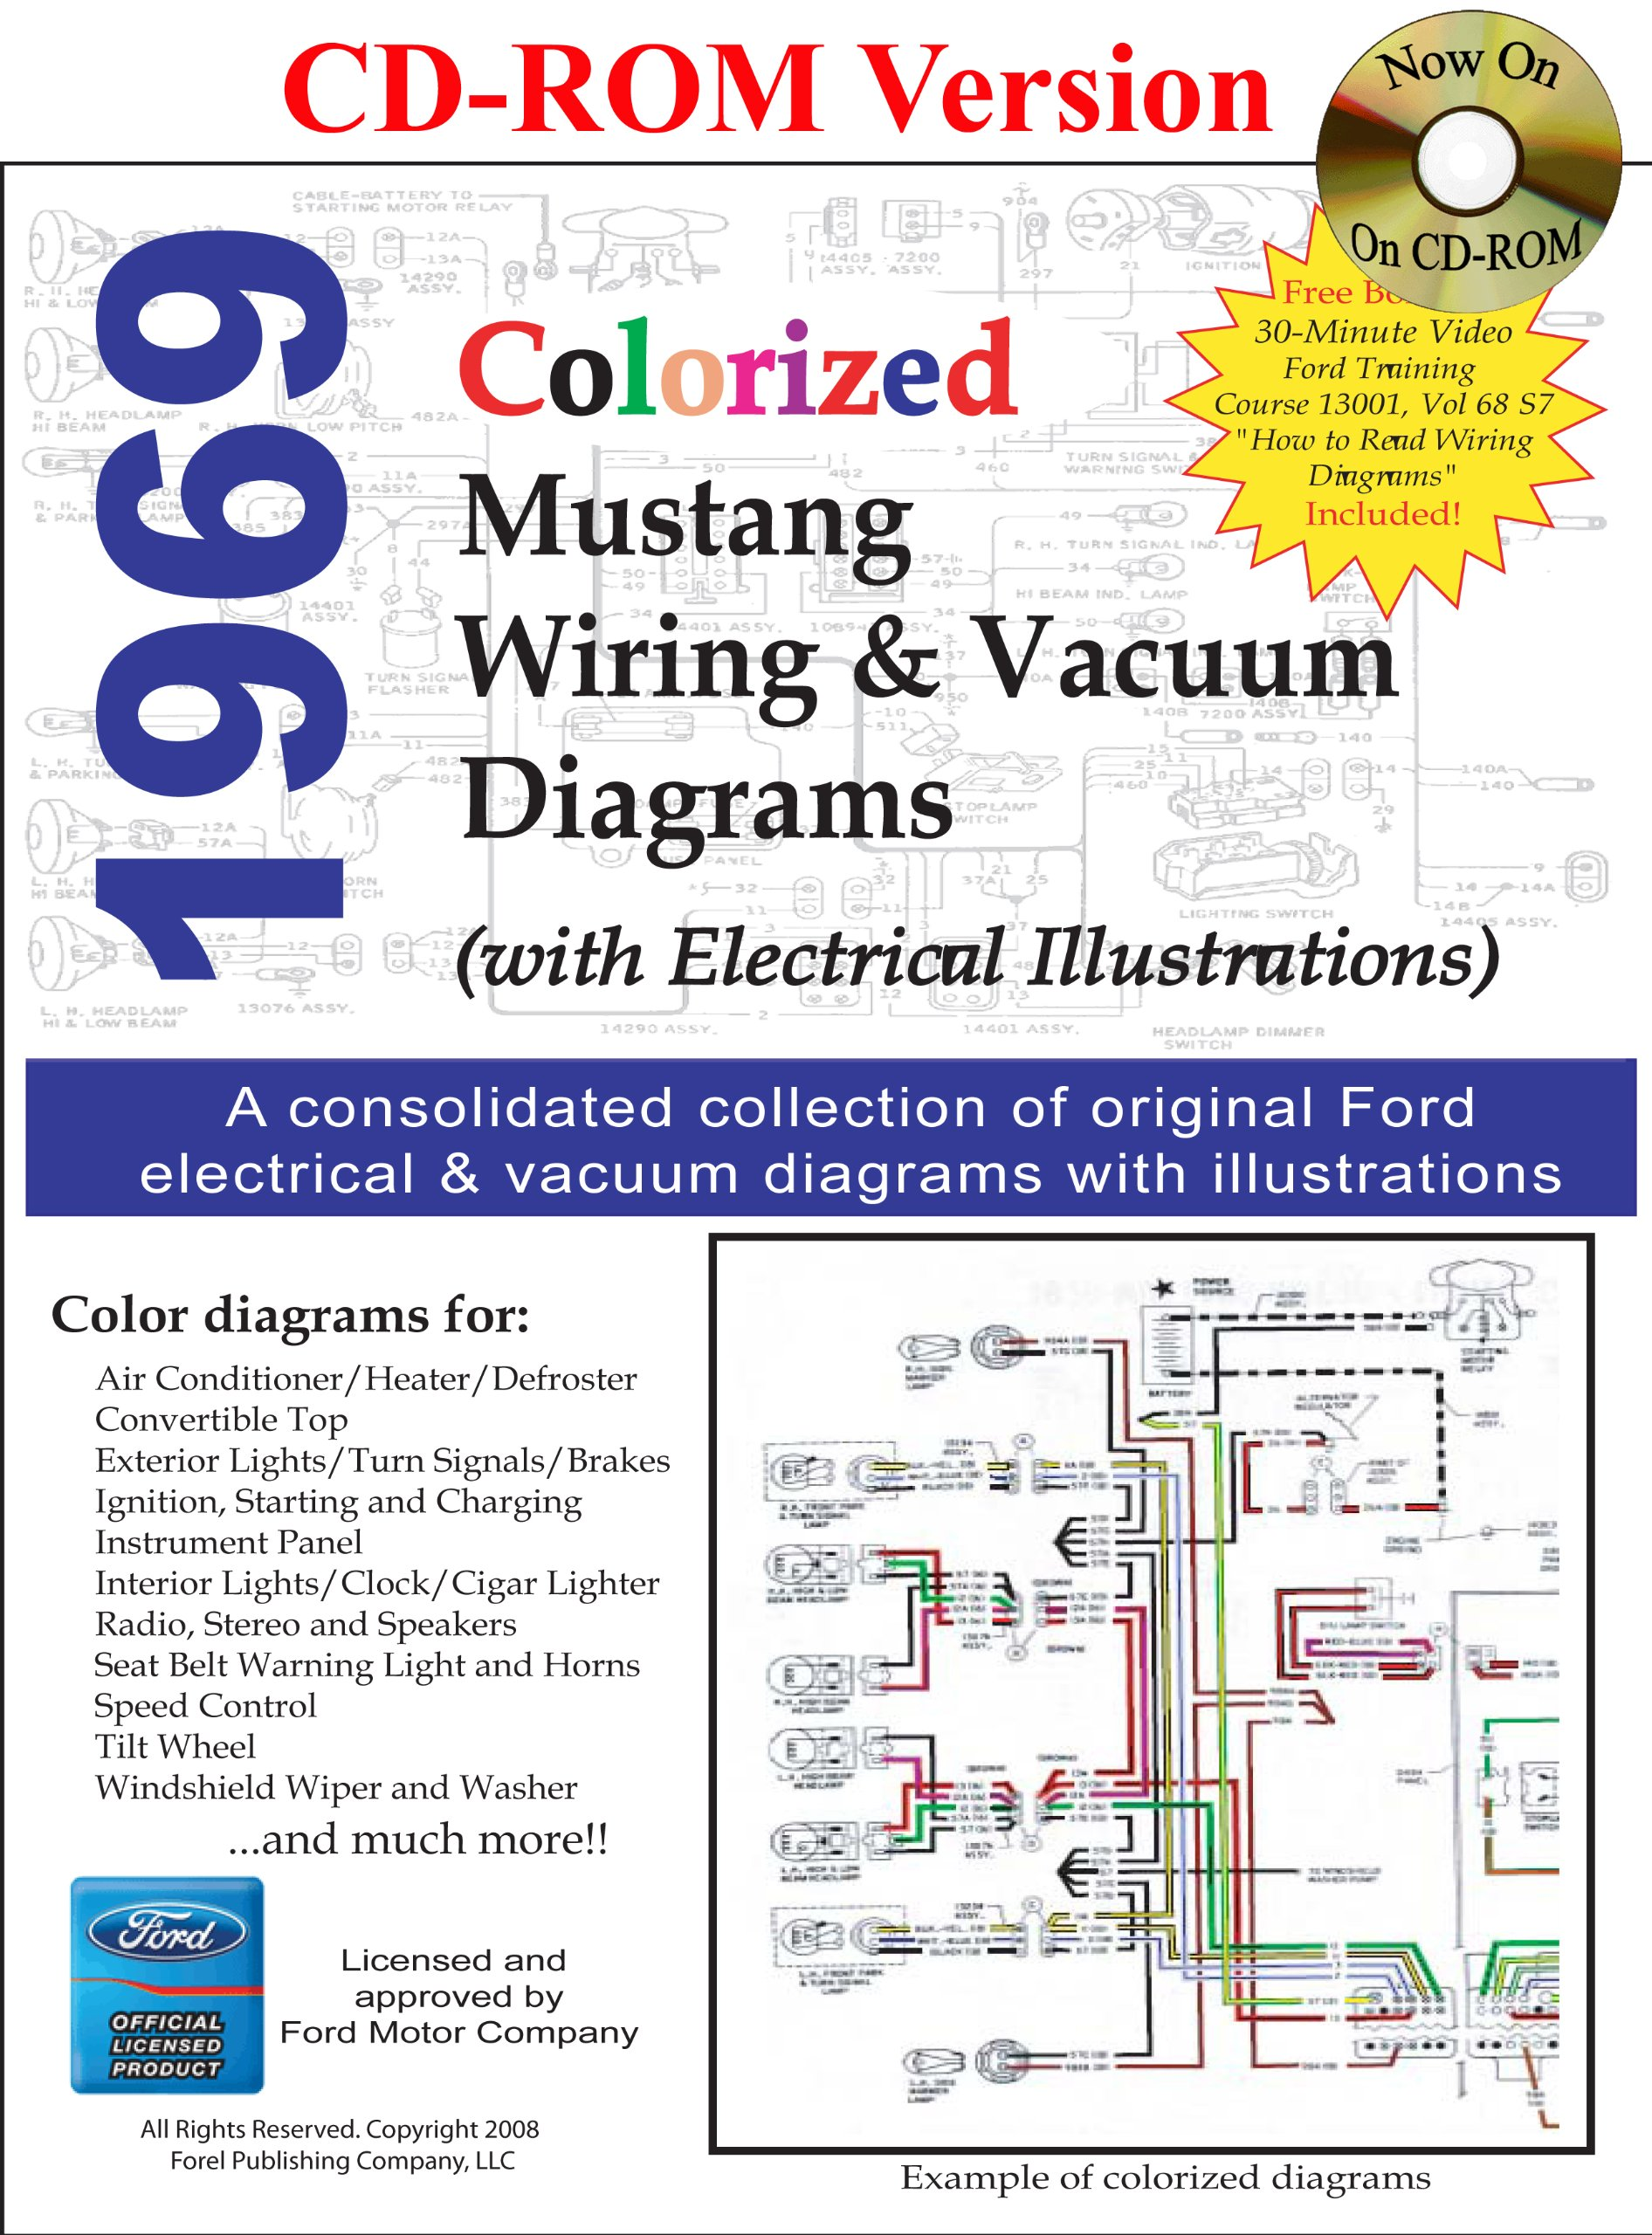 1969 Colorized Mustang Wiring & Vacuum Diagrams: David E. LeBlanc, David E.  LeBlanc: 9781603710282: Amazon.com: BooksAmazon.com